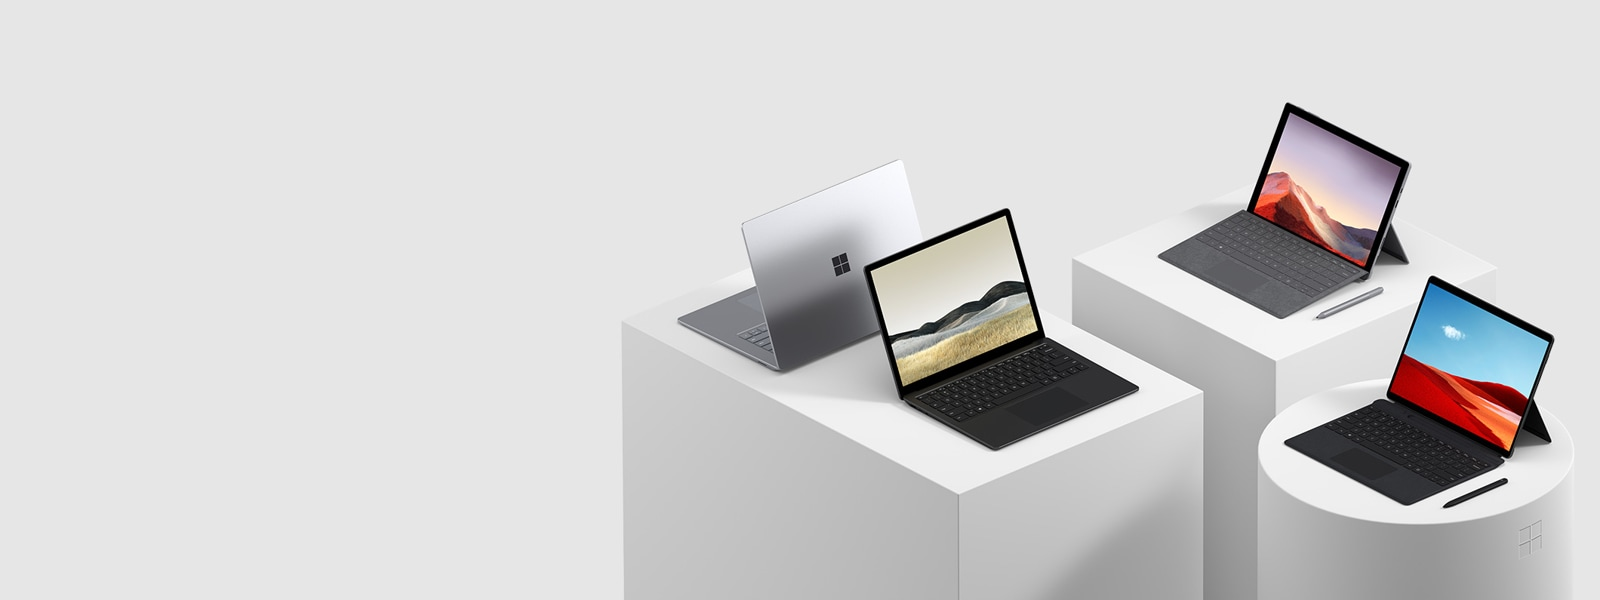 Surface Pro 7 + Surface Pro X + Surface Laptop 3